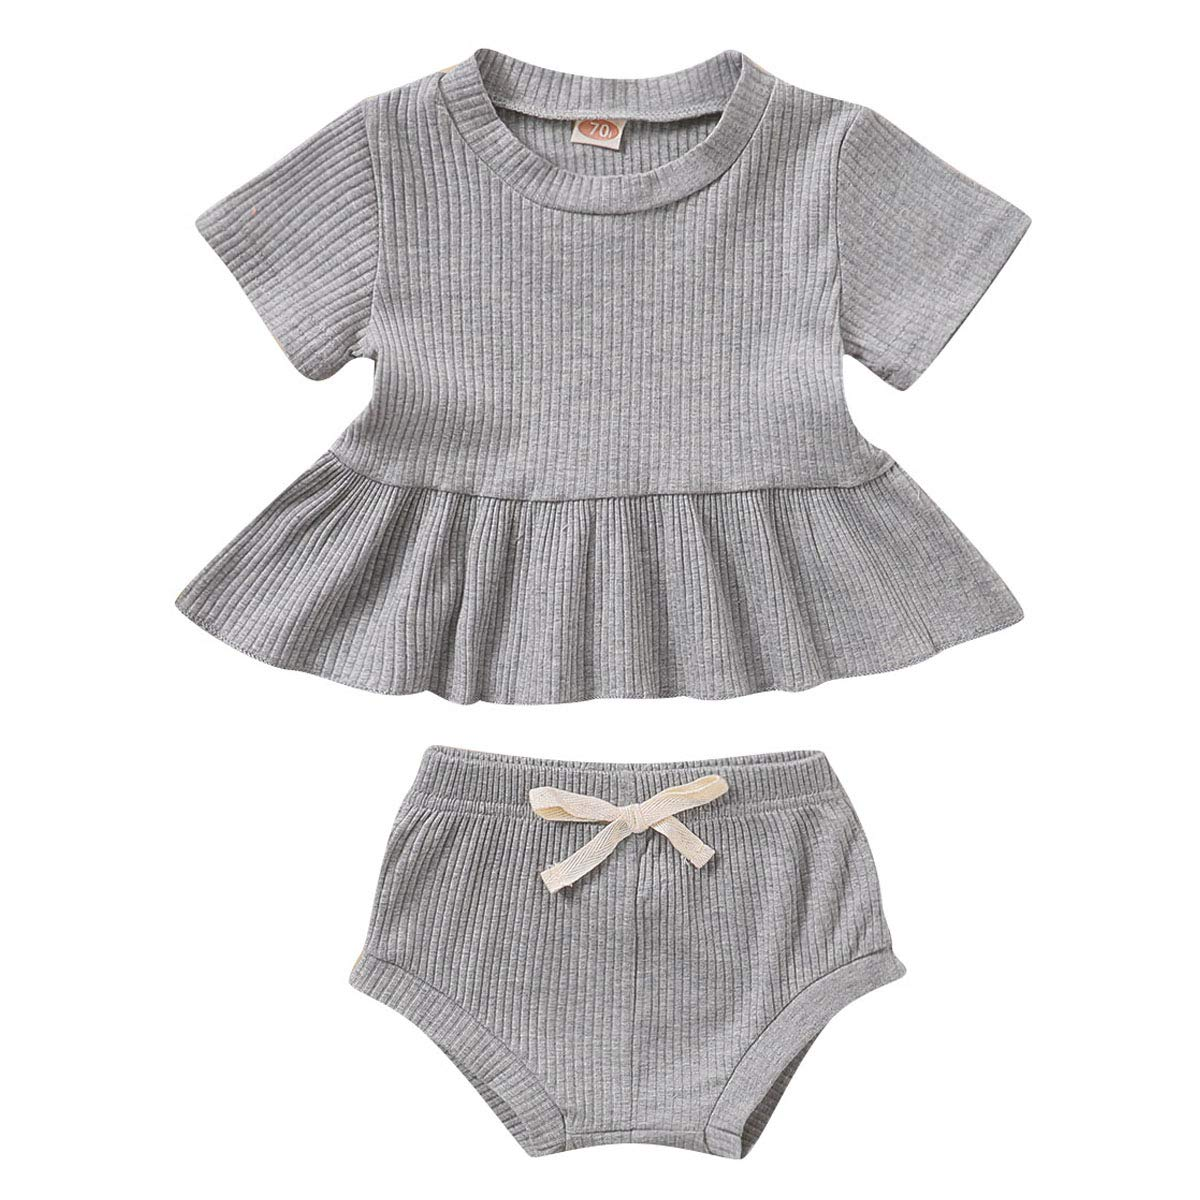 SANMIO 2PCS Cute Toddler Baby Girls Clothes Outfits with Panty Summer Short Set